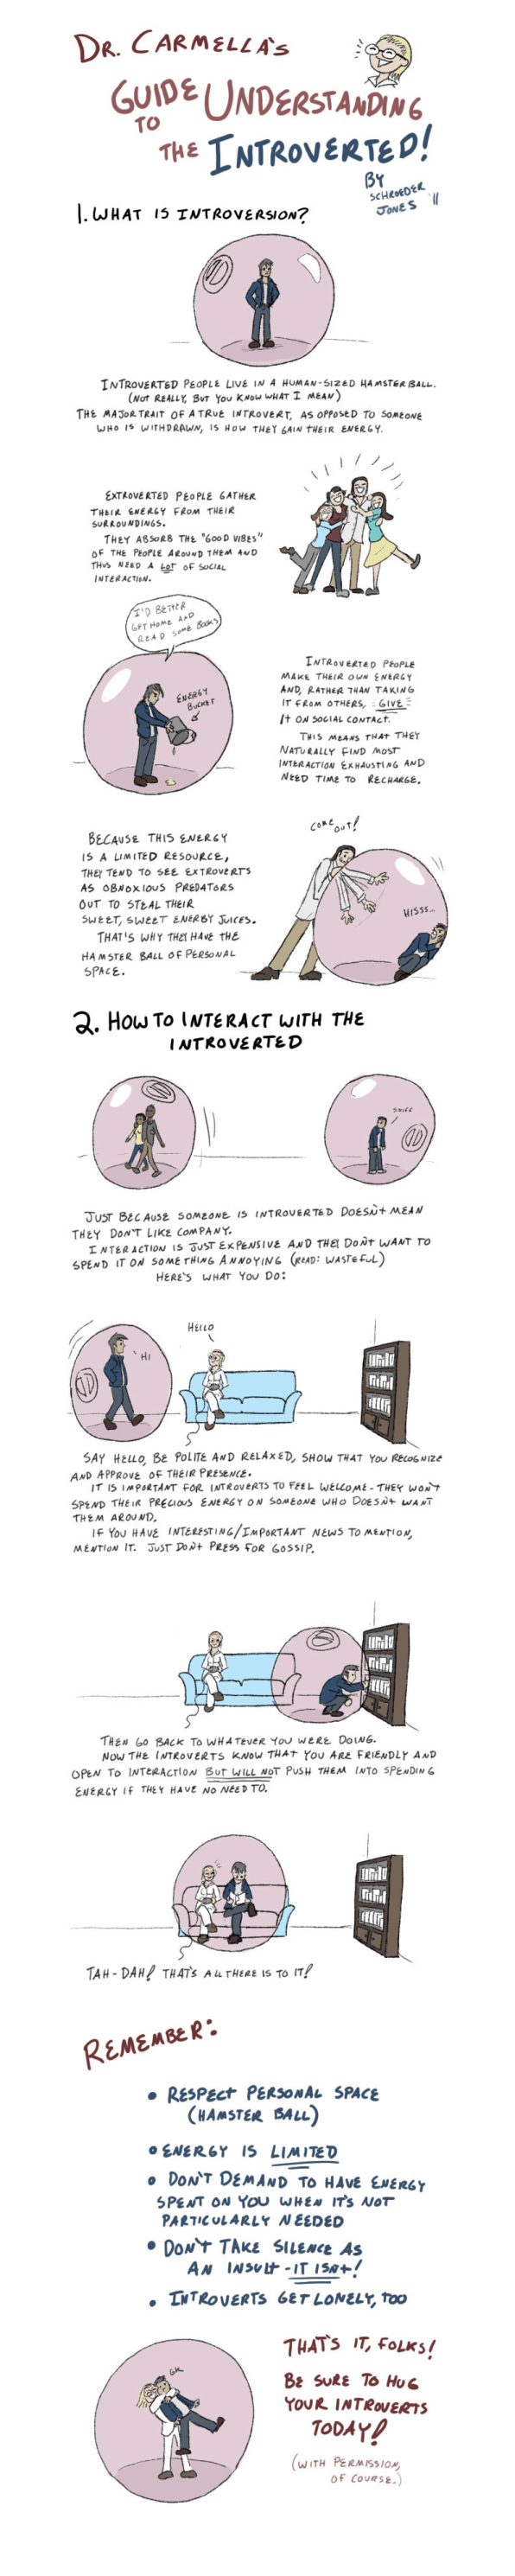 Interact Introvert An How To With was designed